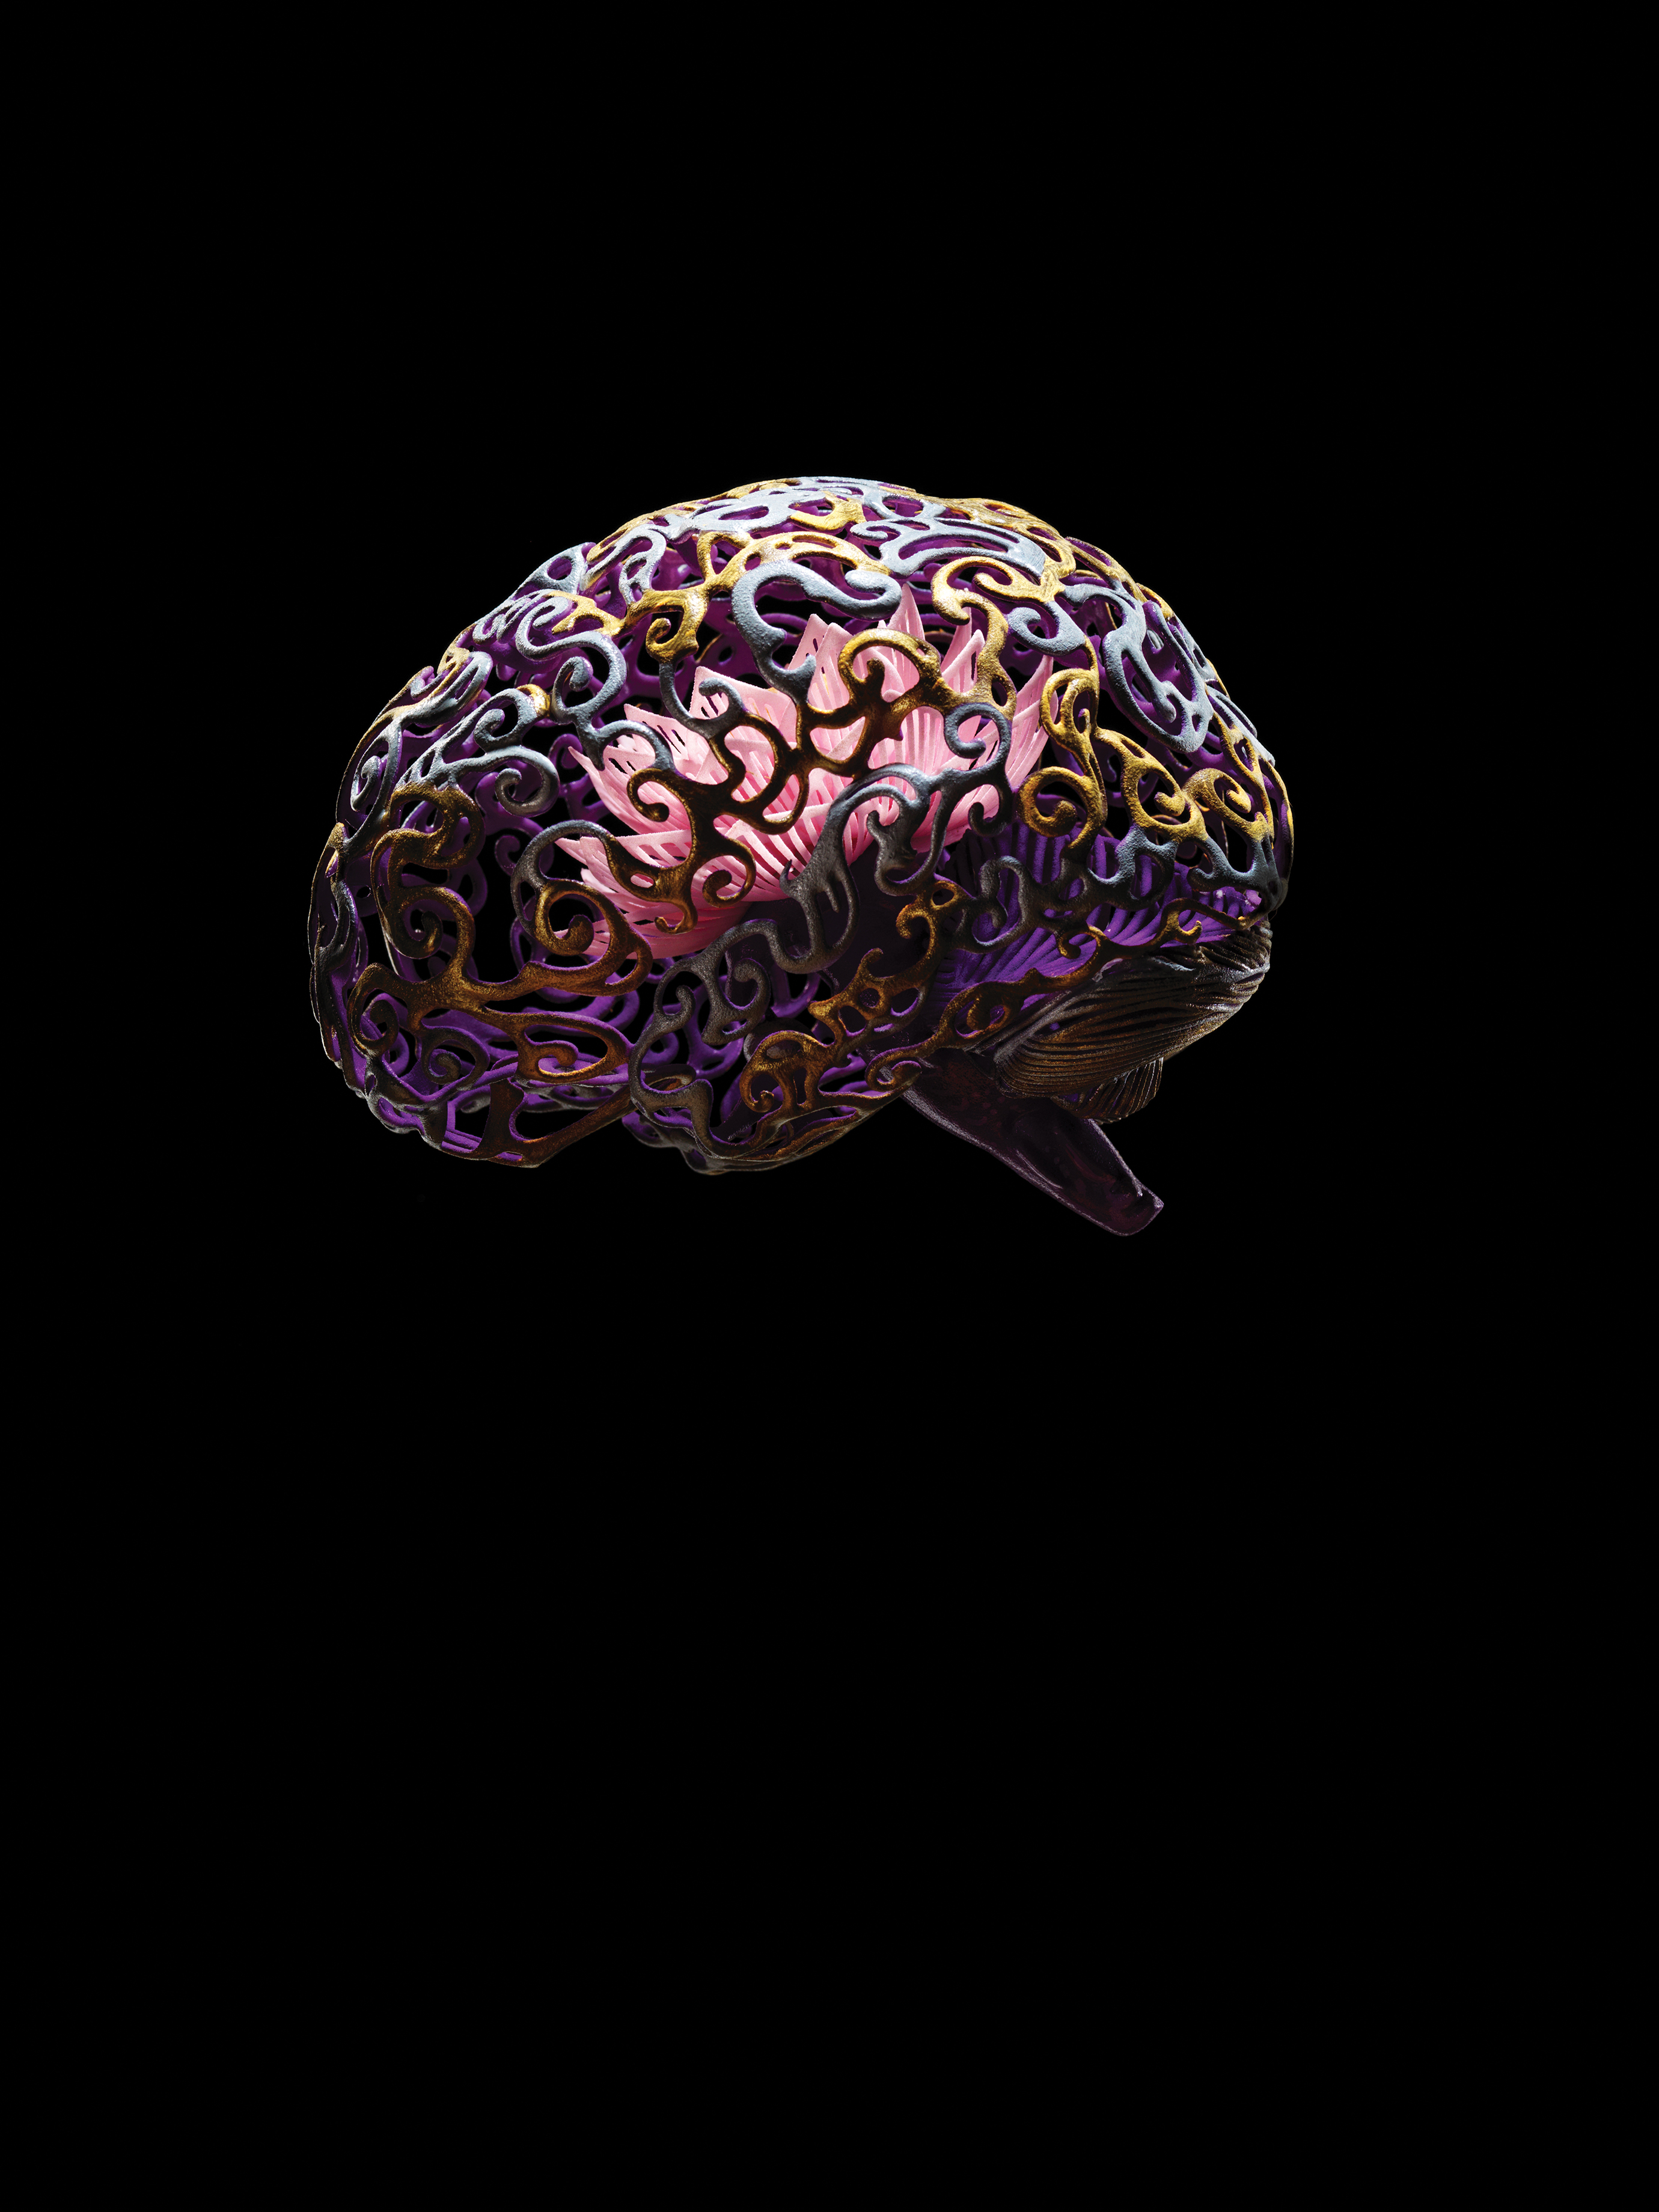 Neurosciences New Toolbox Mit Technology Review Cool Circuits Puts Your Brain Muscle To The Test